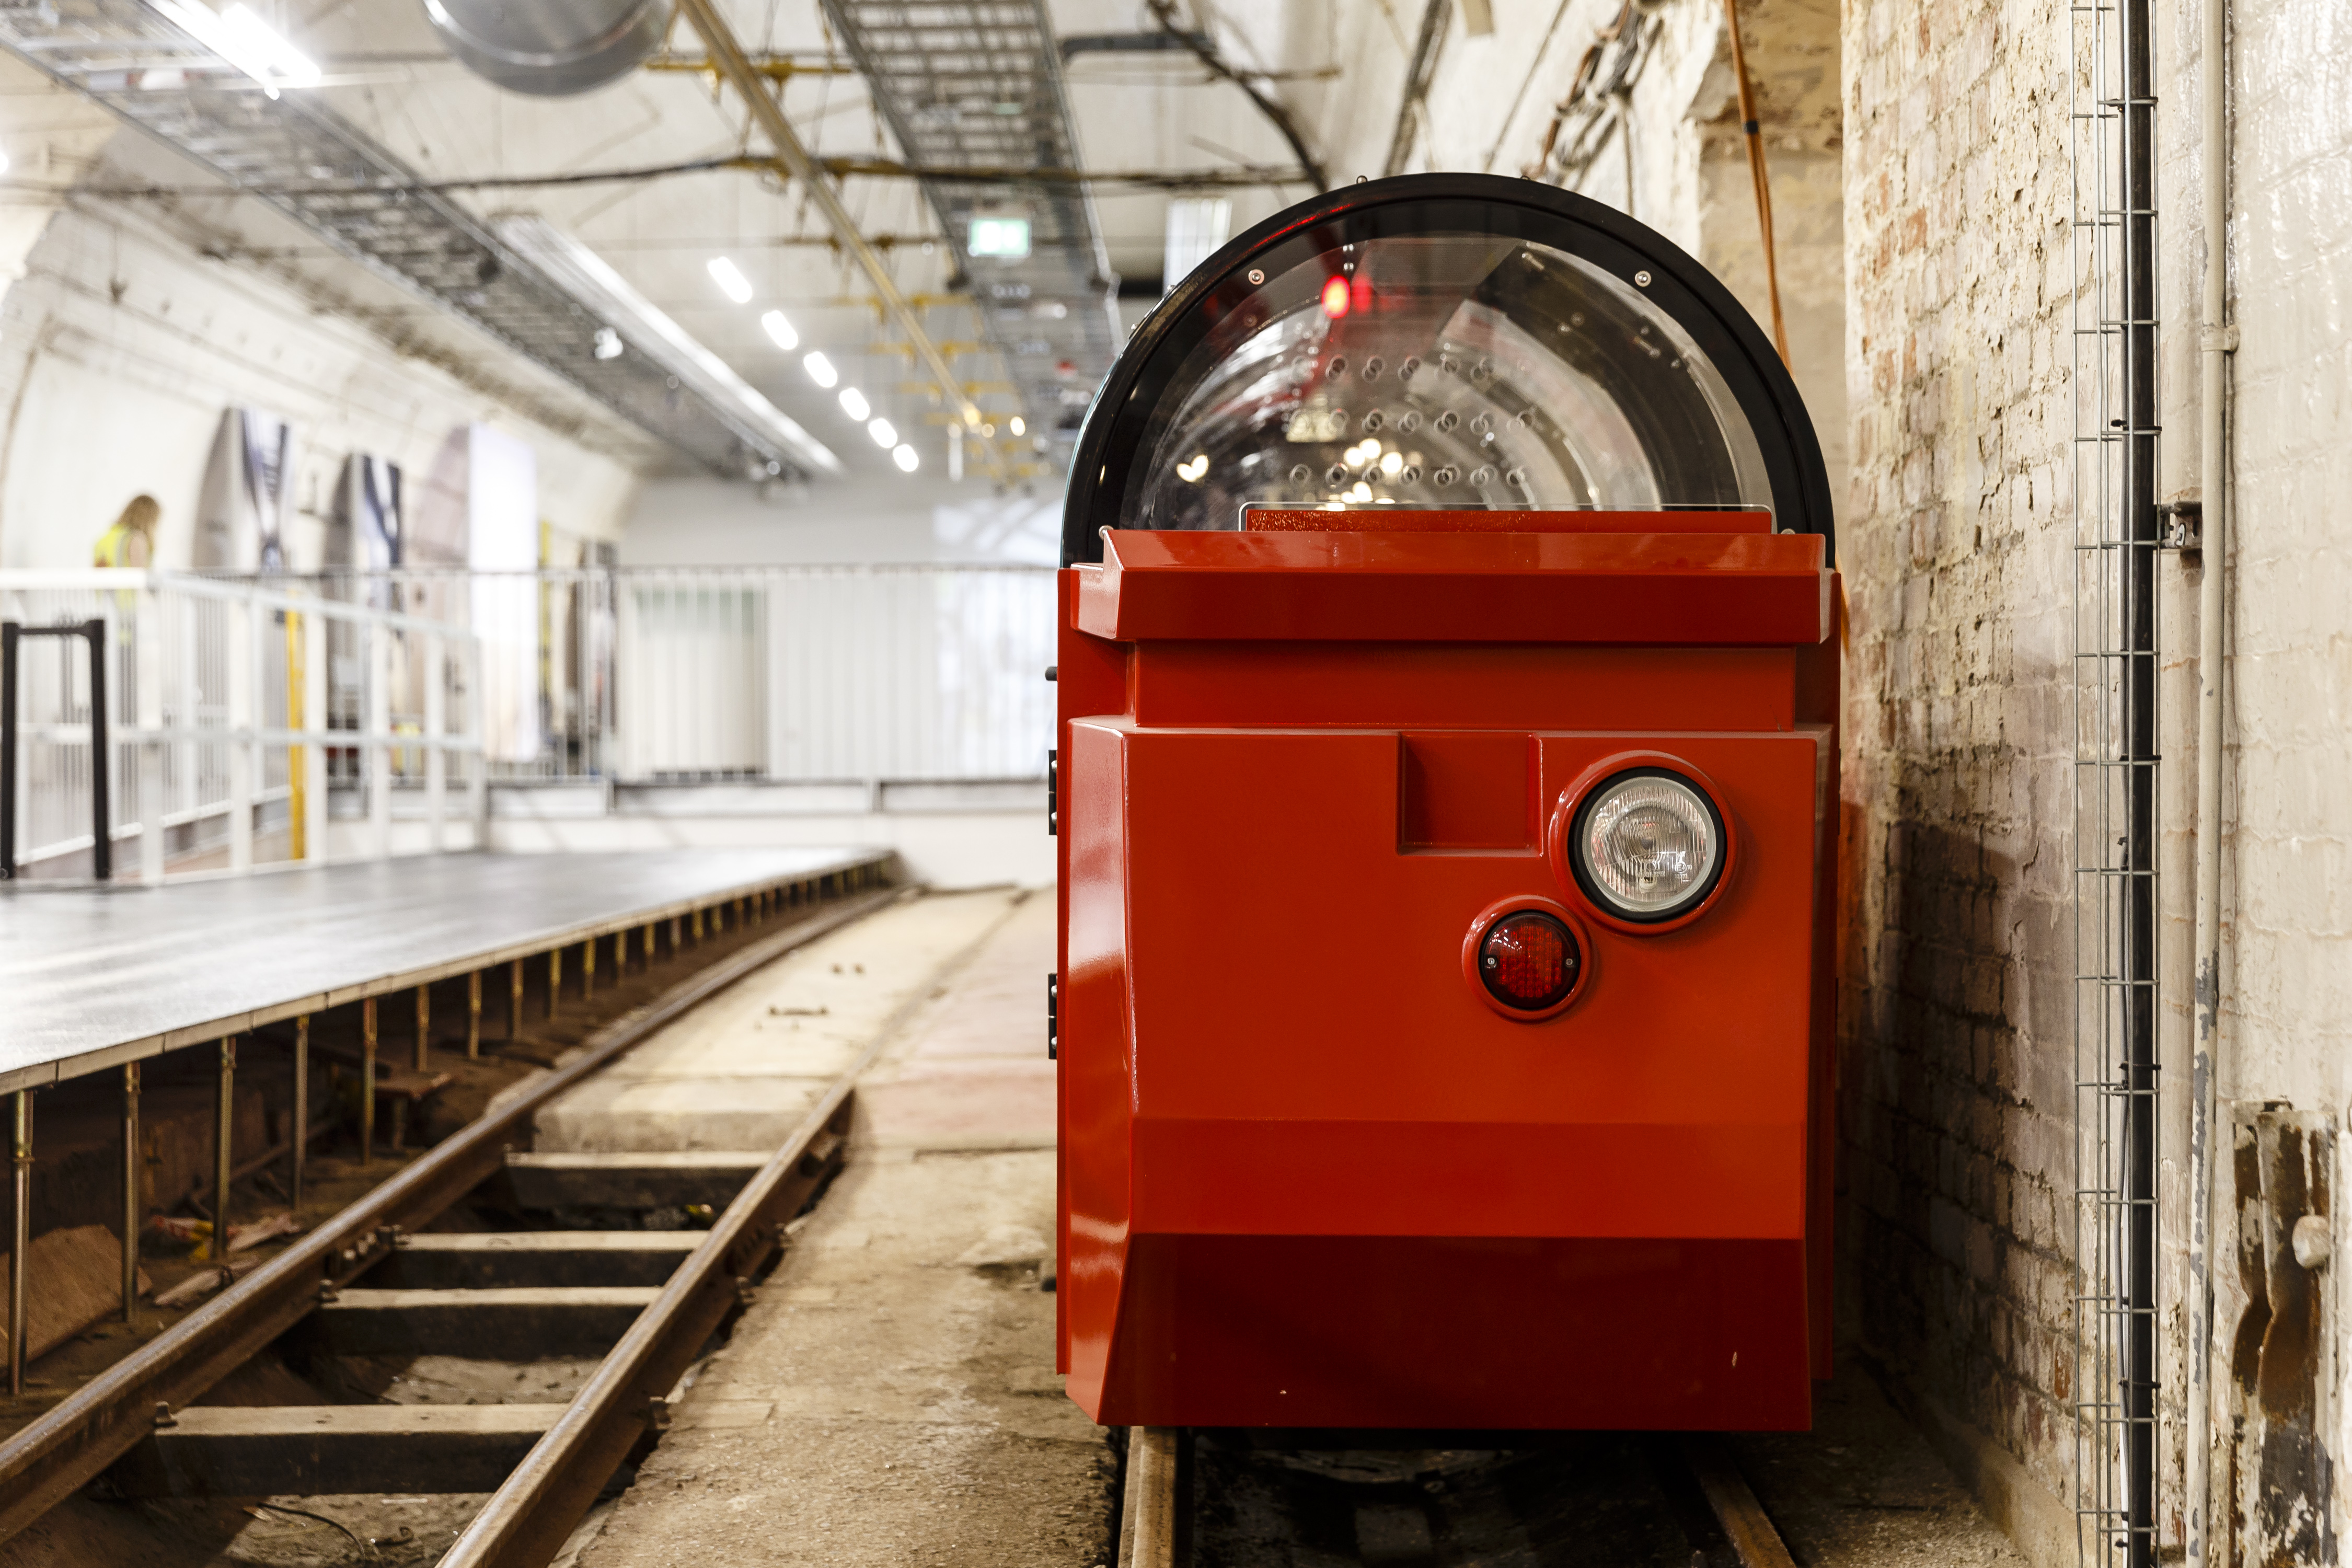 The new Mail Rail passenger train at The Postal Museum will open in September.